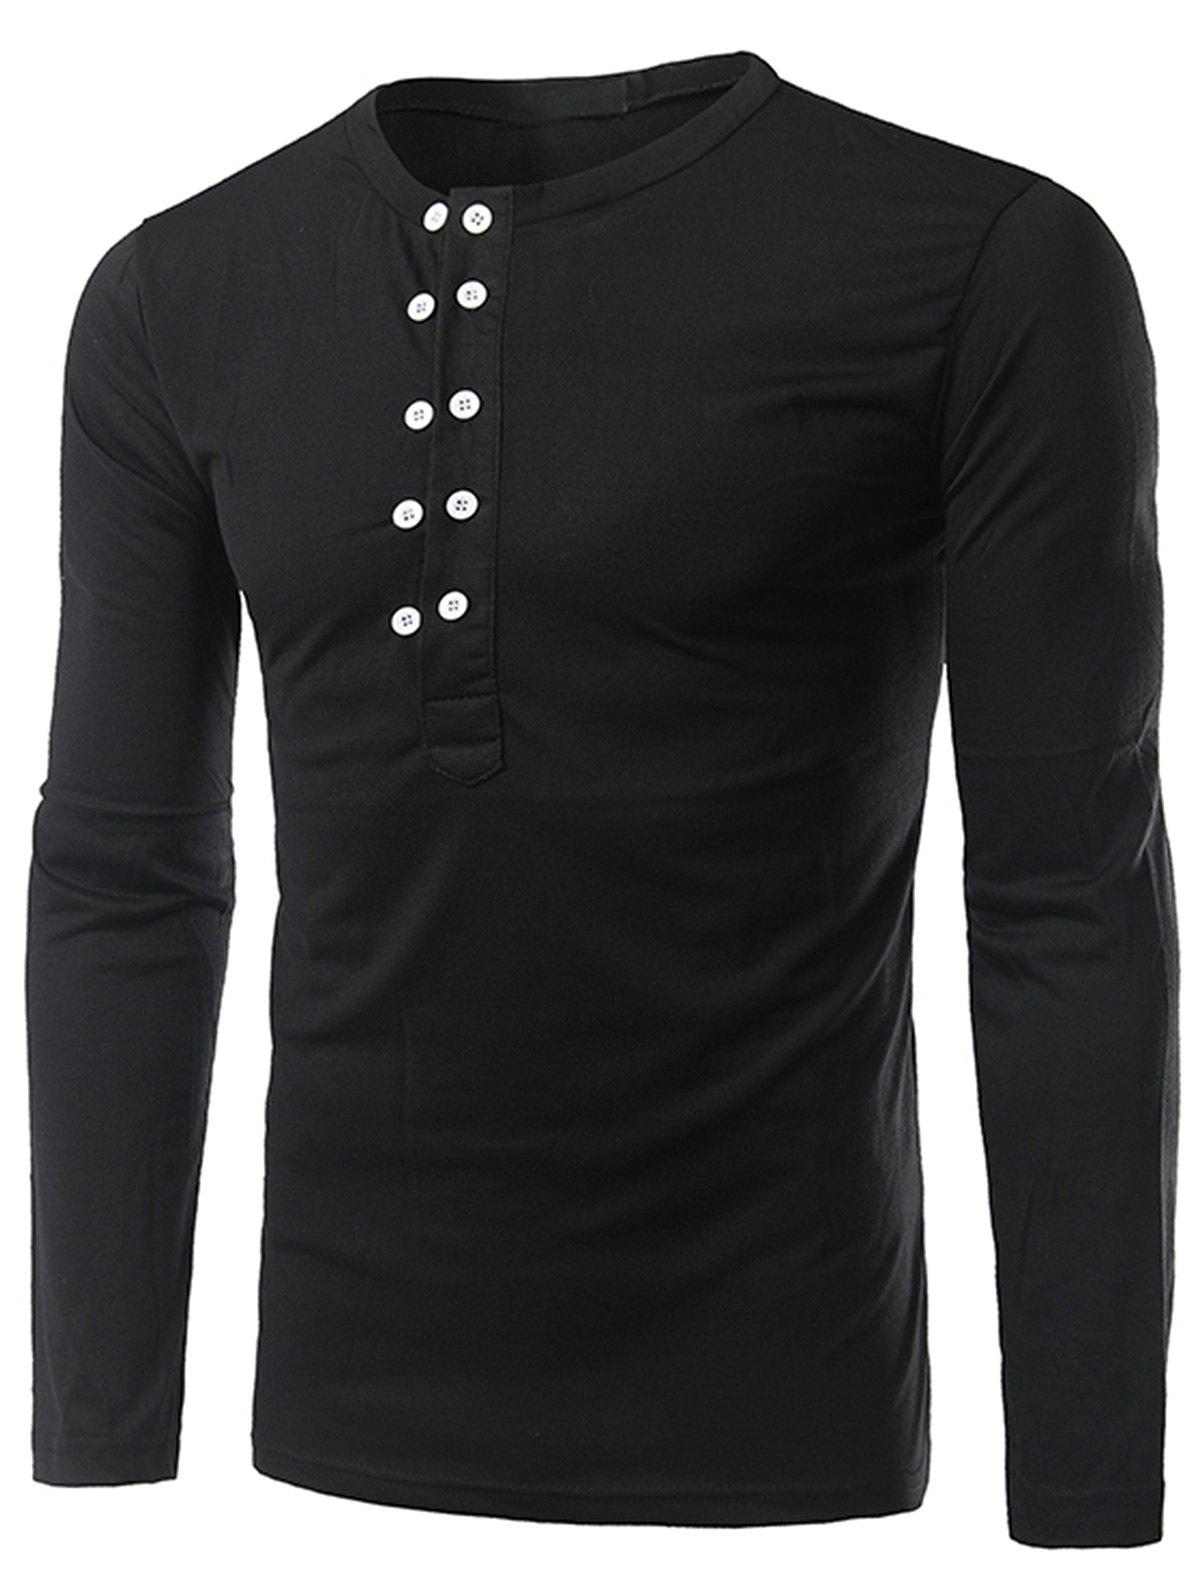 Chic Half Buttons Long Sleeve T-shirt